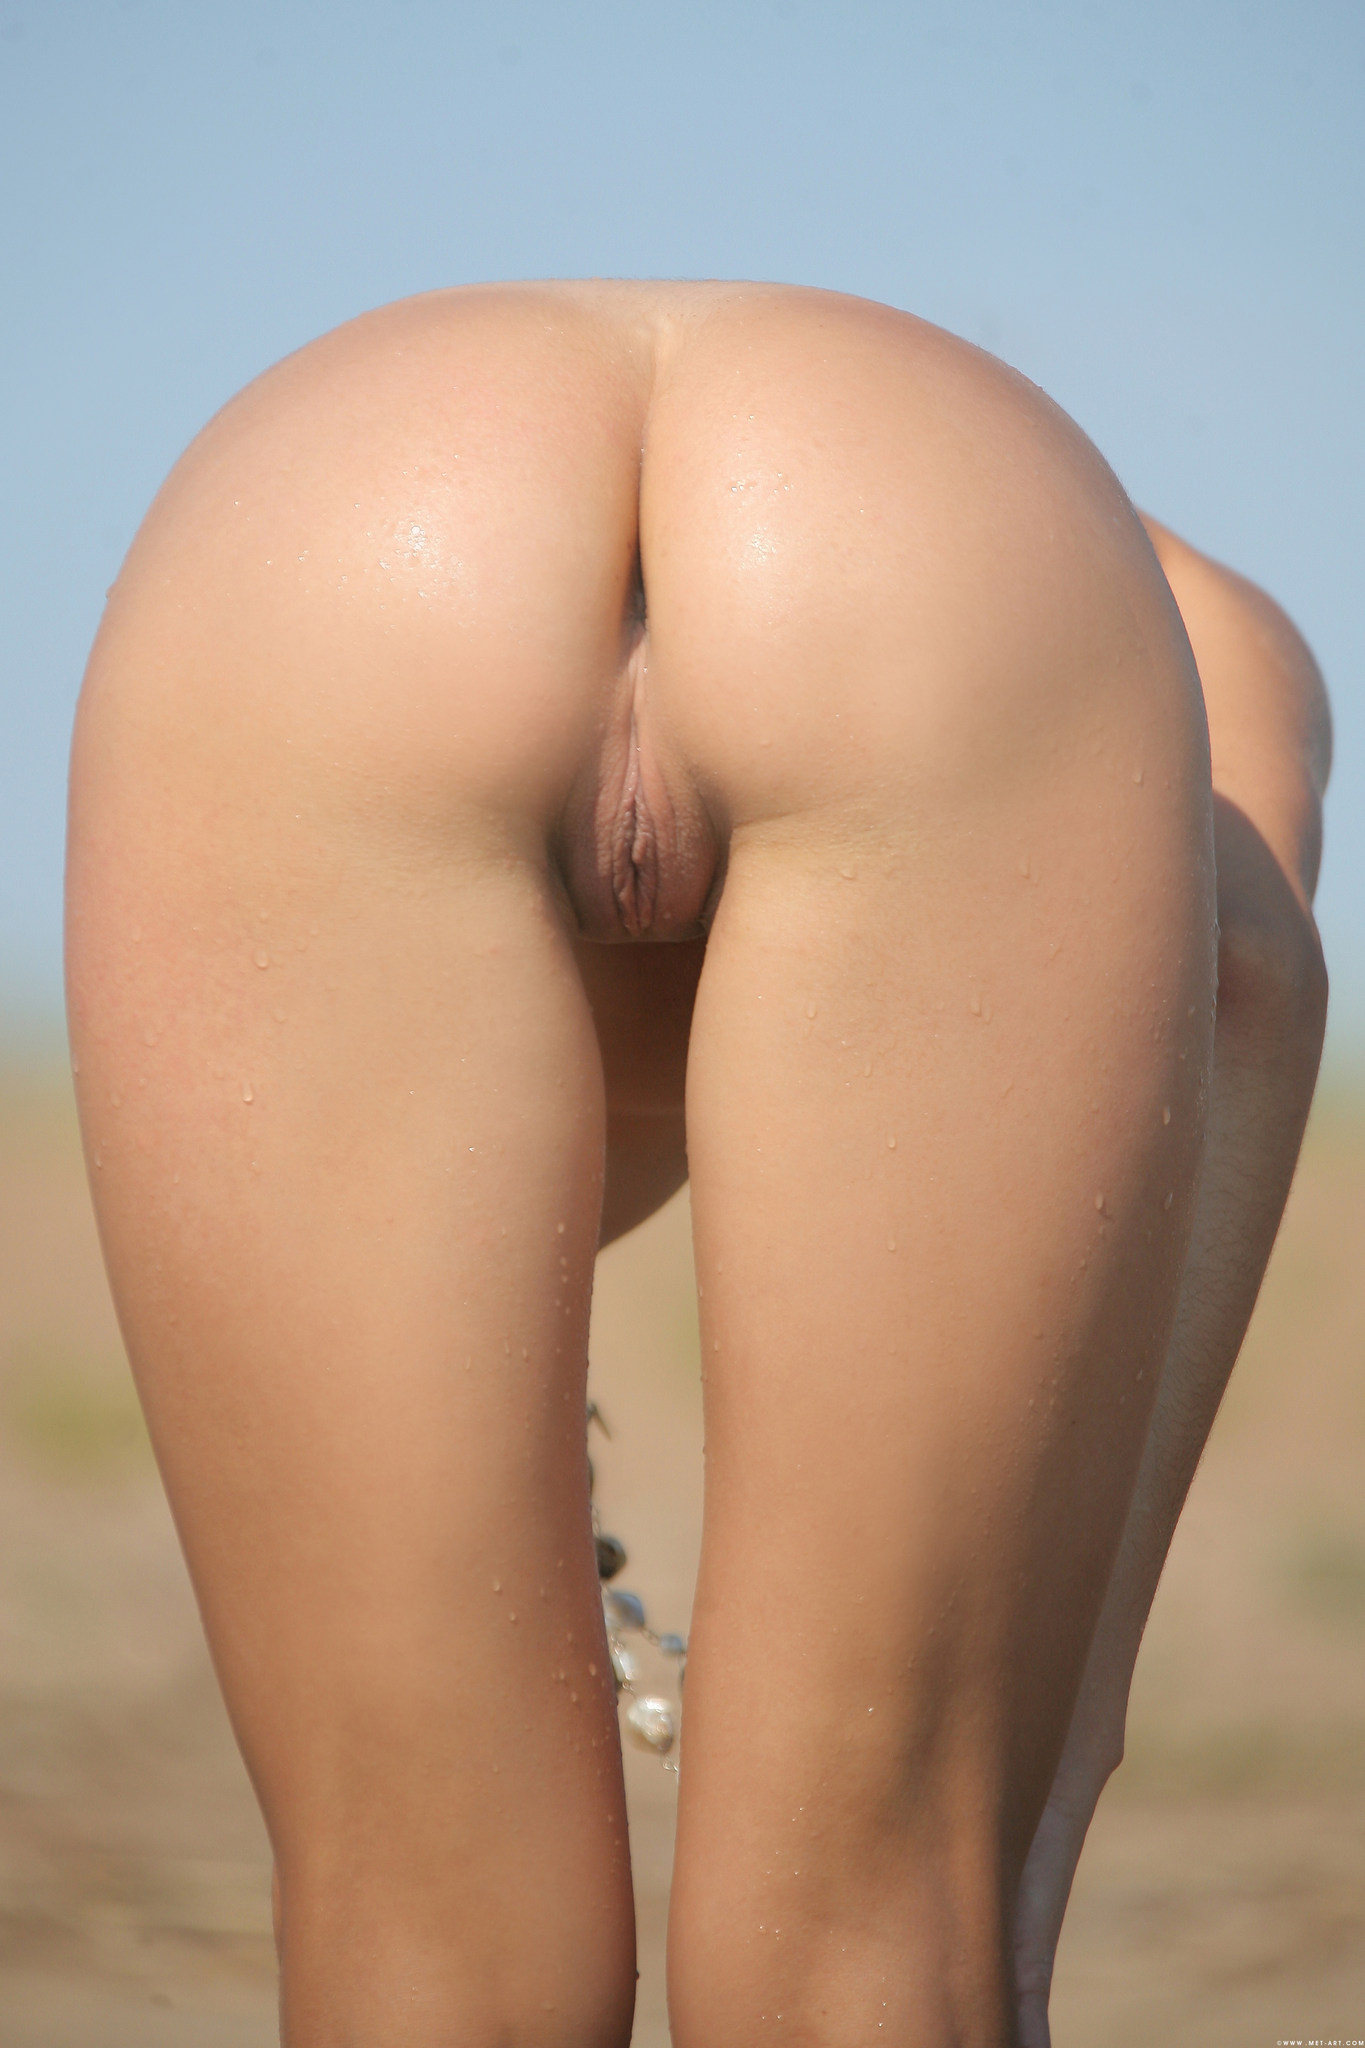 ass-nude-girls-buttocks-mix-vol6-45